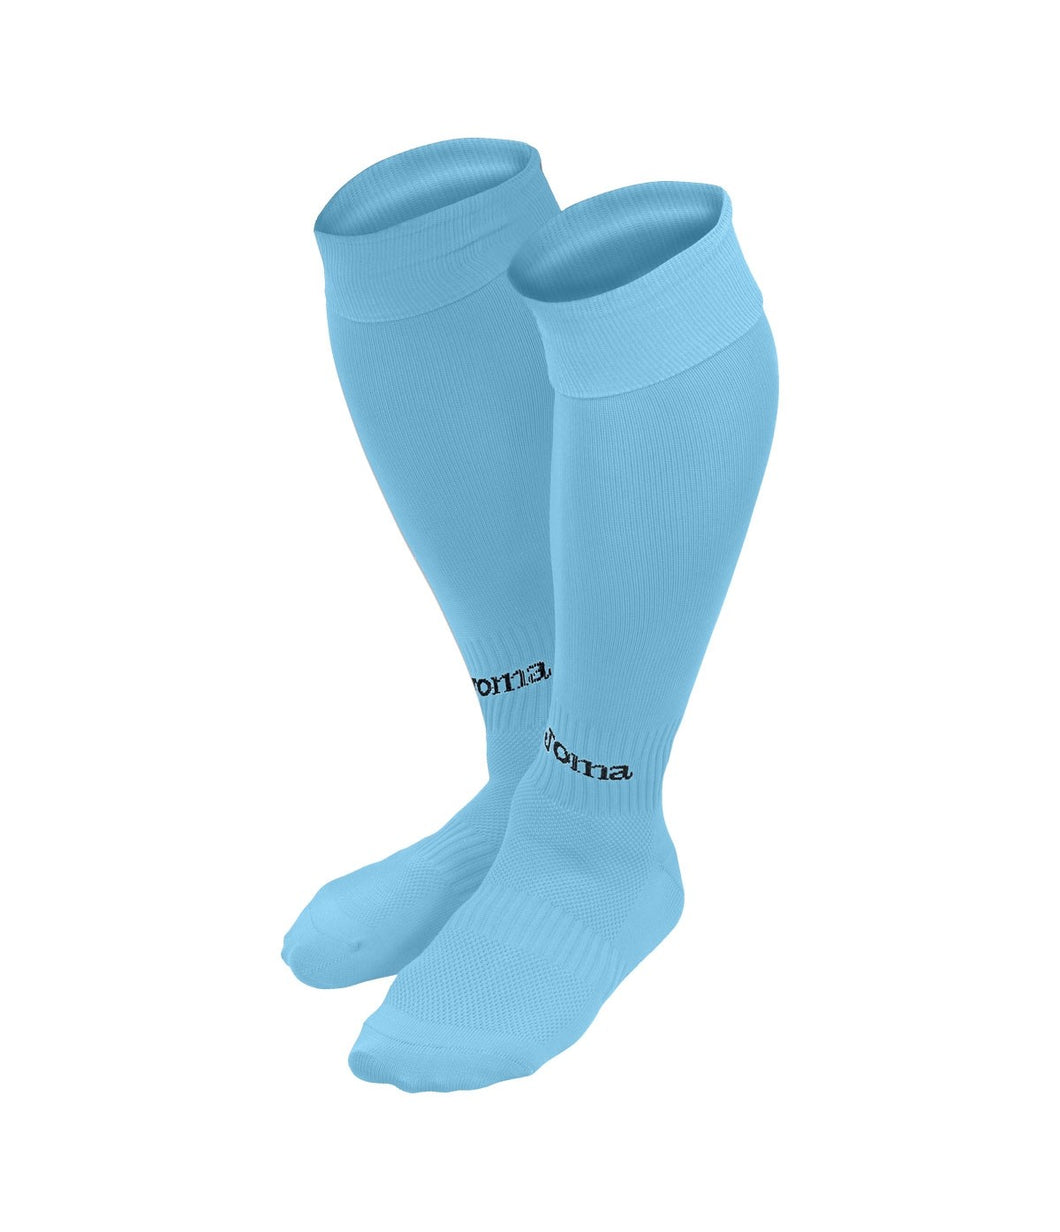 Joma Classic II Blue Football Socks